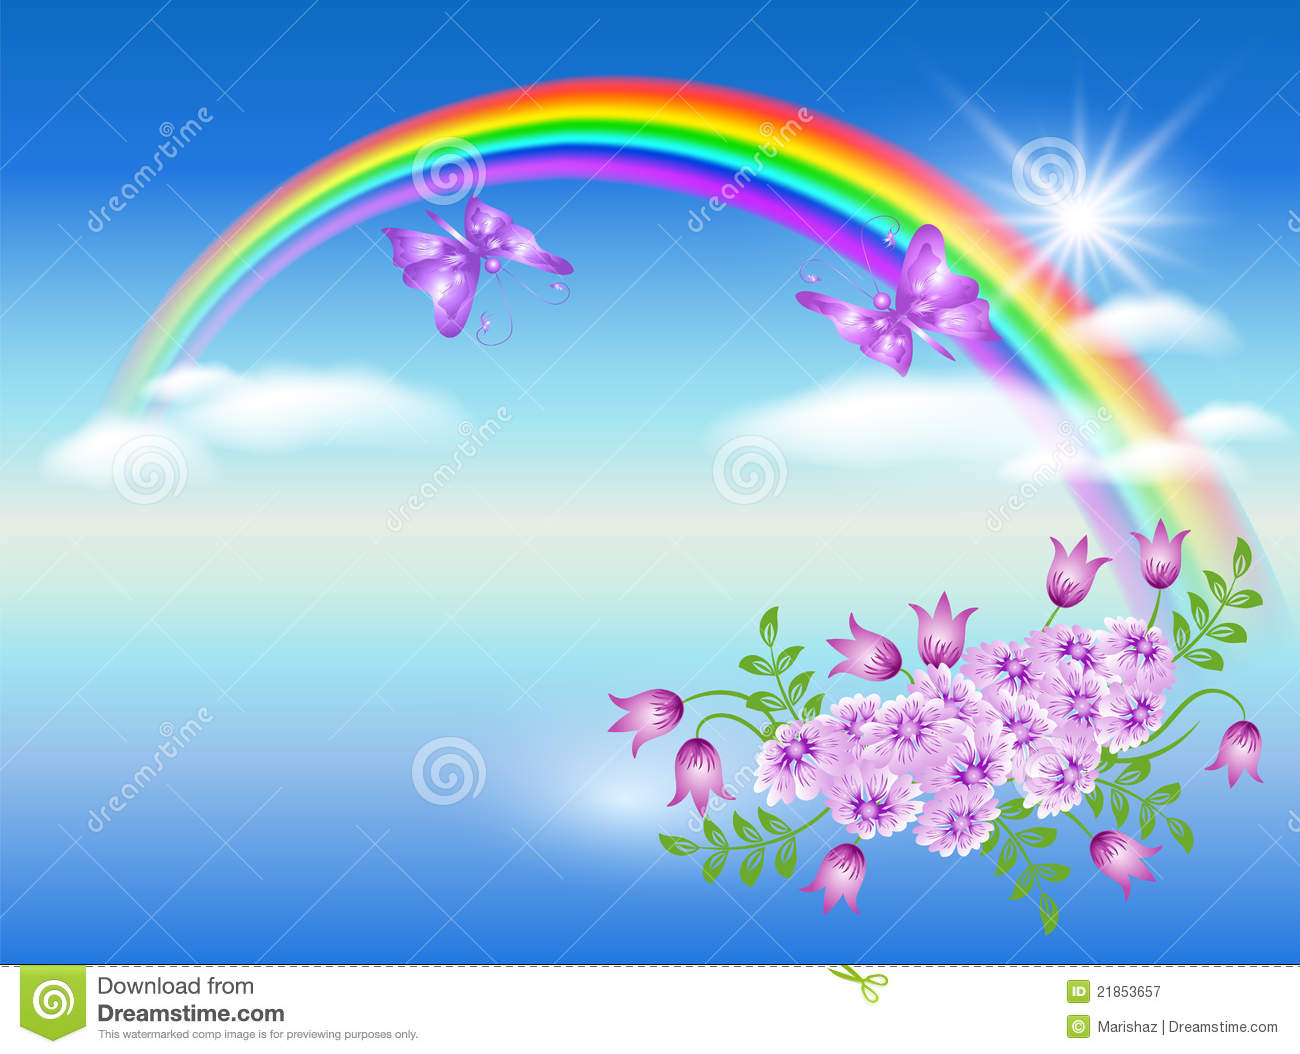 Rainbow and flowers stock vector. Illustration of beams ...